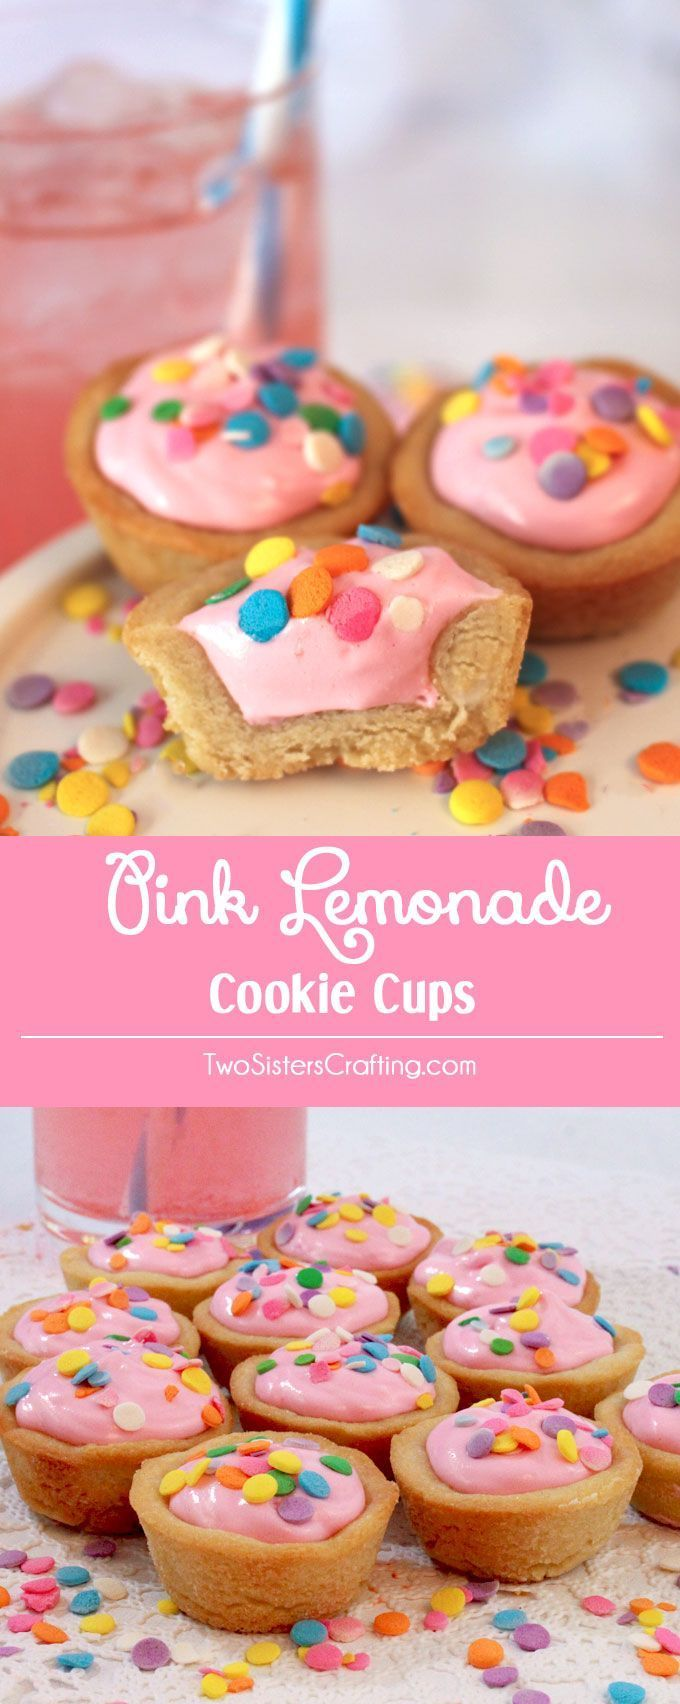 Pink Lemonade Cookie Cups. These are simply perfect for an Easter party!